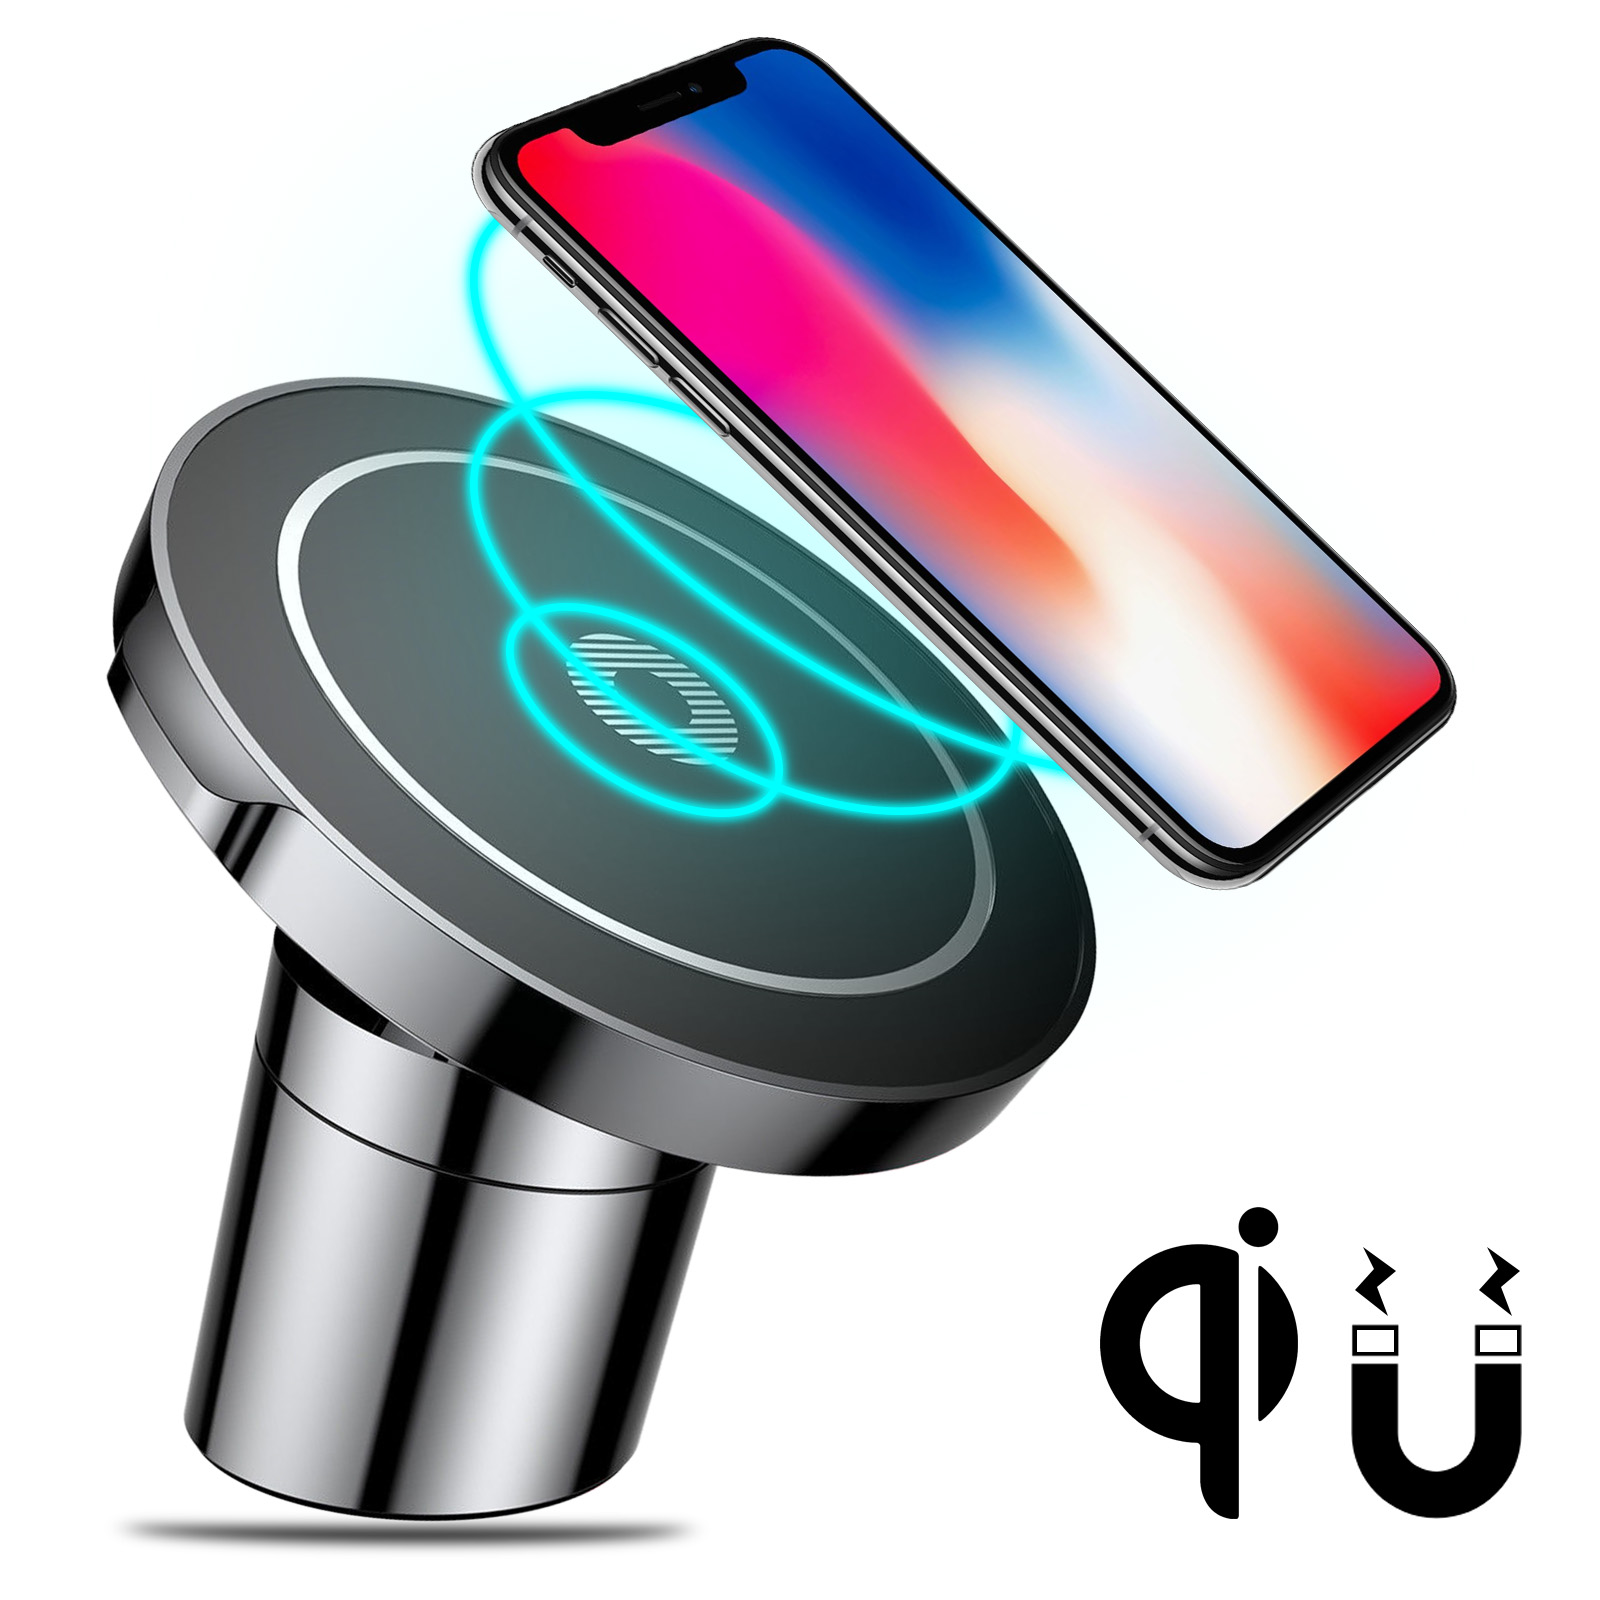 Fast Wireless Car Charger, TSV Quick Charger Magnetic Phone Holder for iPhone X/ iPhone 8 Plus/ iPhone 8/ Samsung Galaxy Note 8/ S8/ S8 Plus and All Qi-Enabled Devices